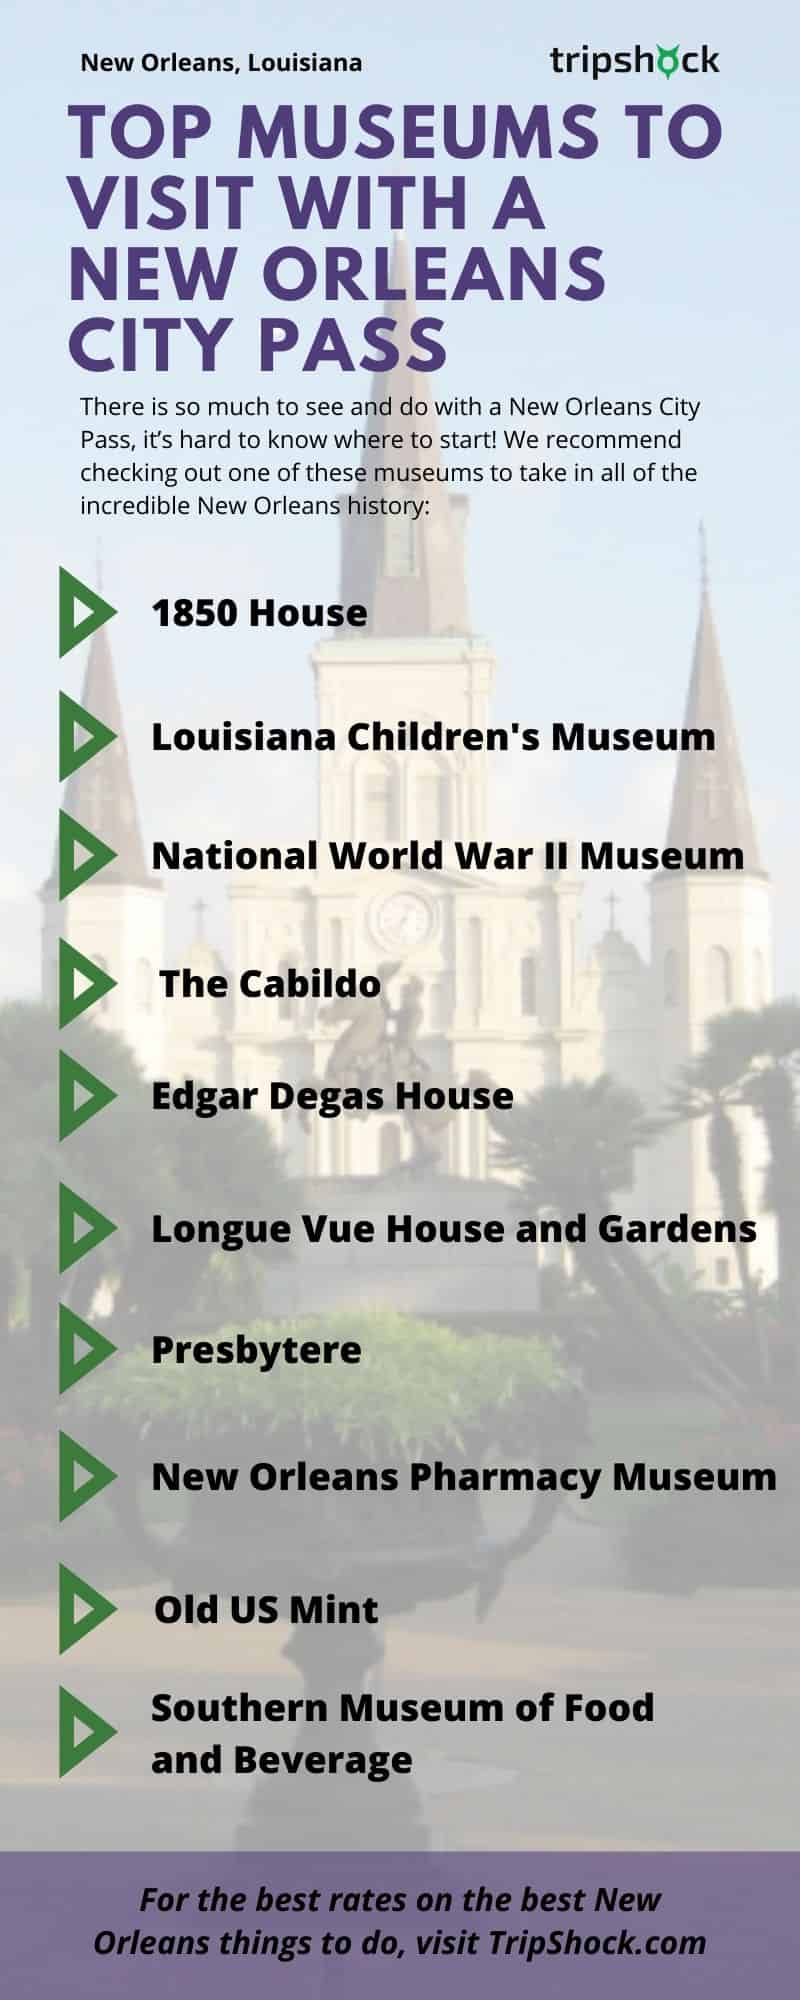 Top Museums to Visit with a New Orleans Pass